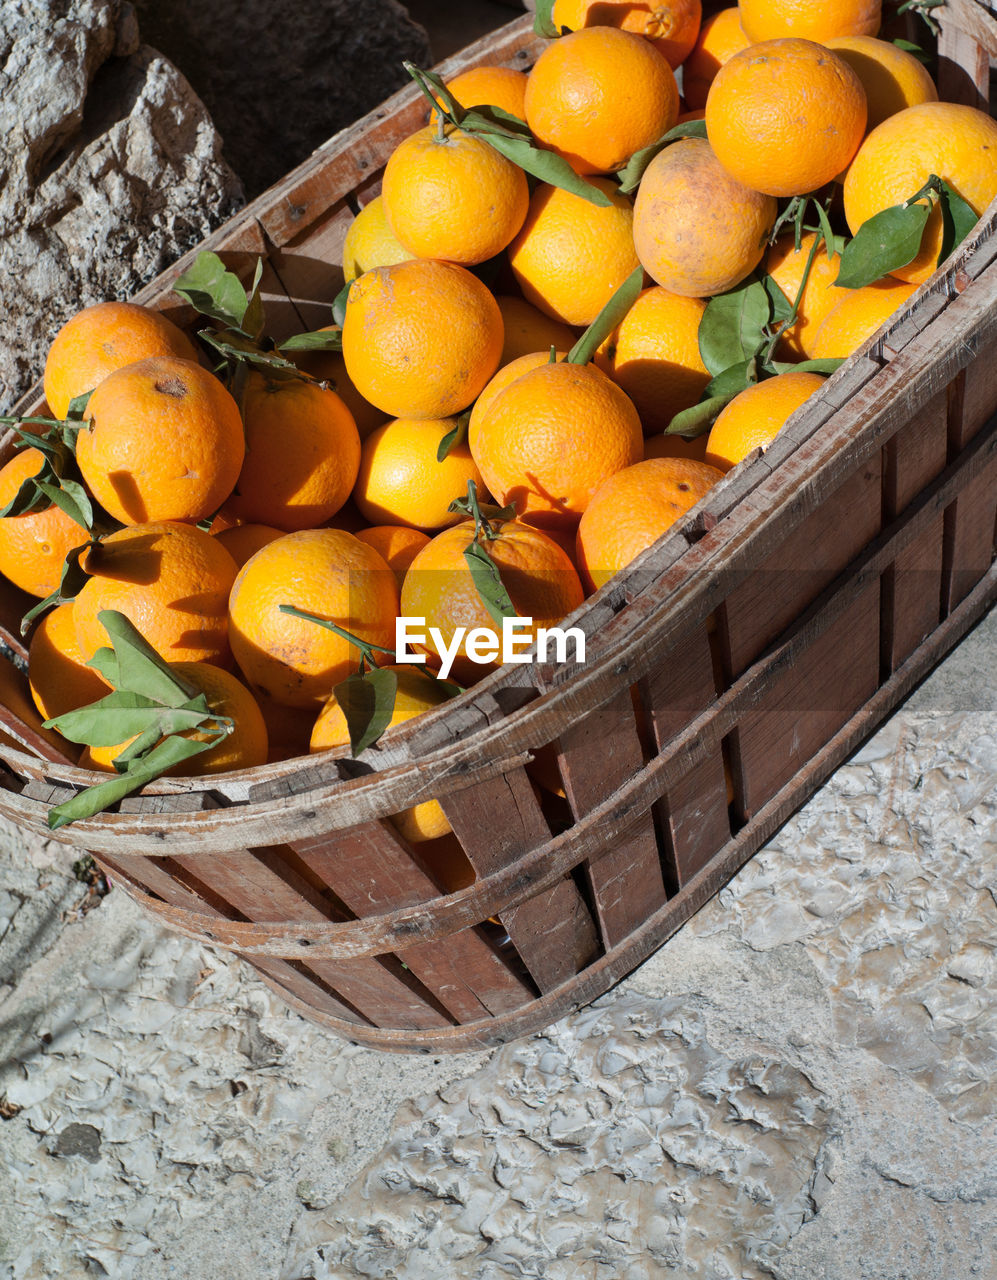 High angle view of fresh organic oranges in wooden basket